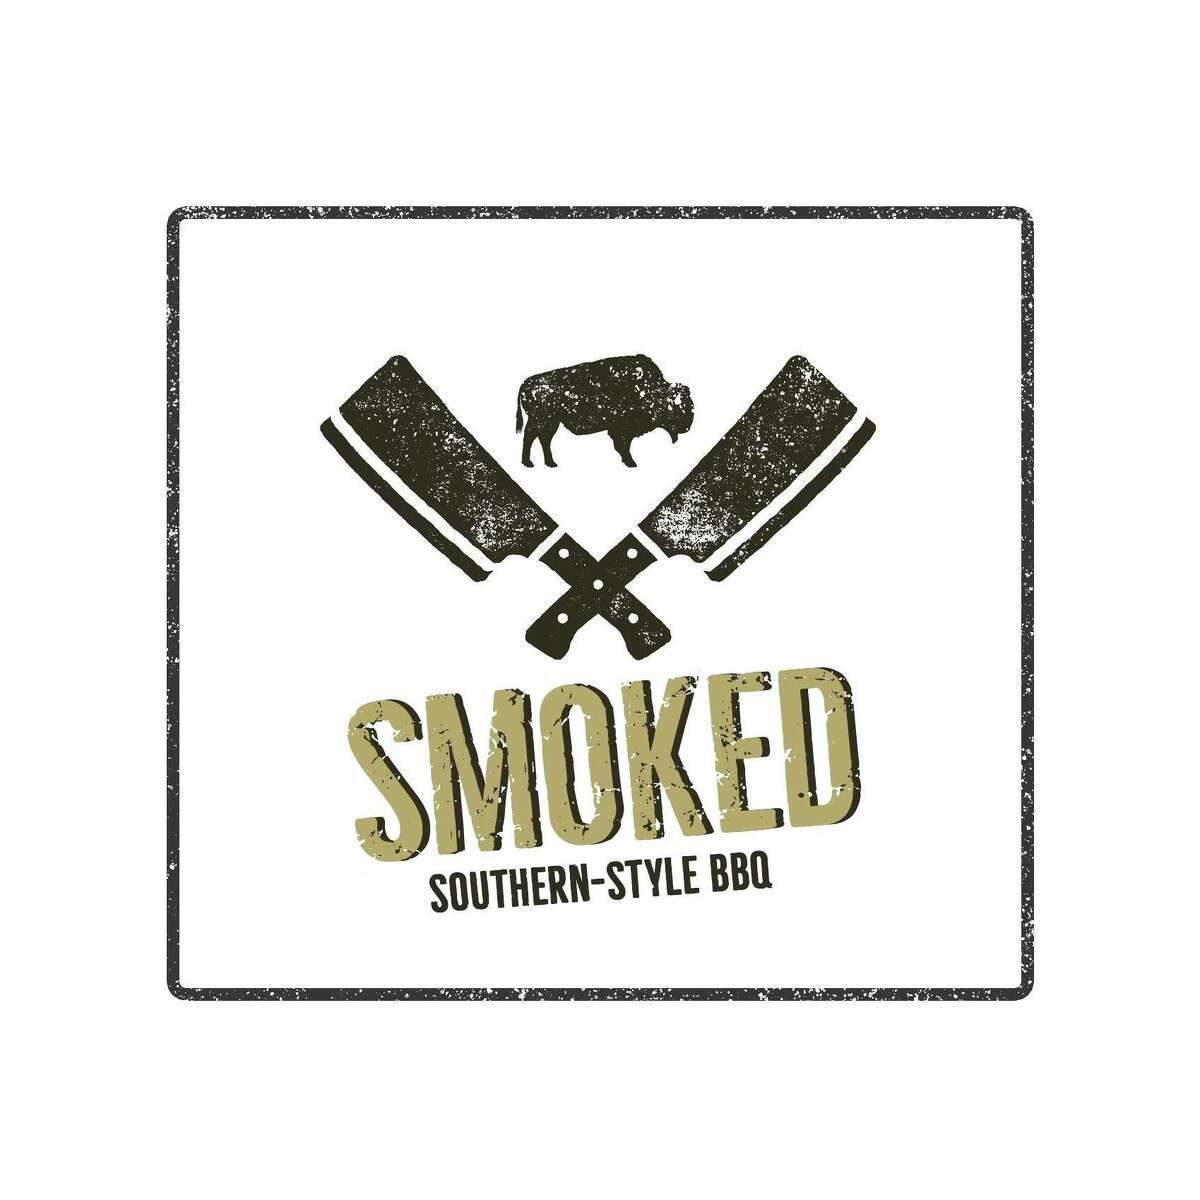 A restaurant called Smoked: Southern-Style barbecue is being developed for an opening later this year.